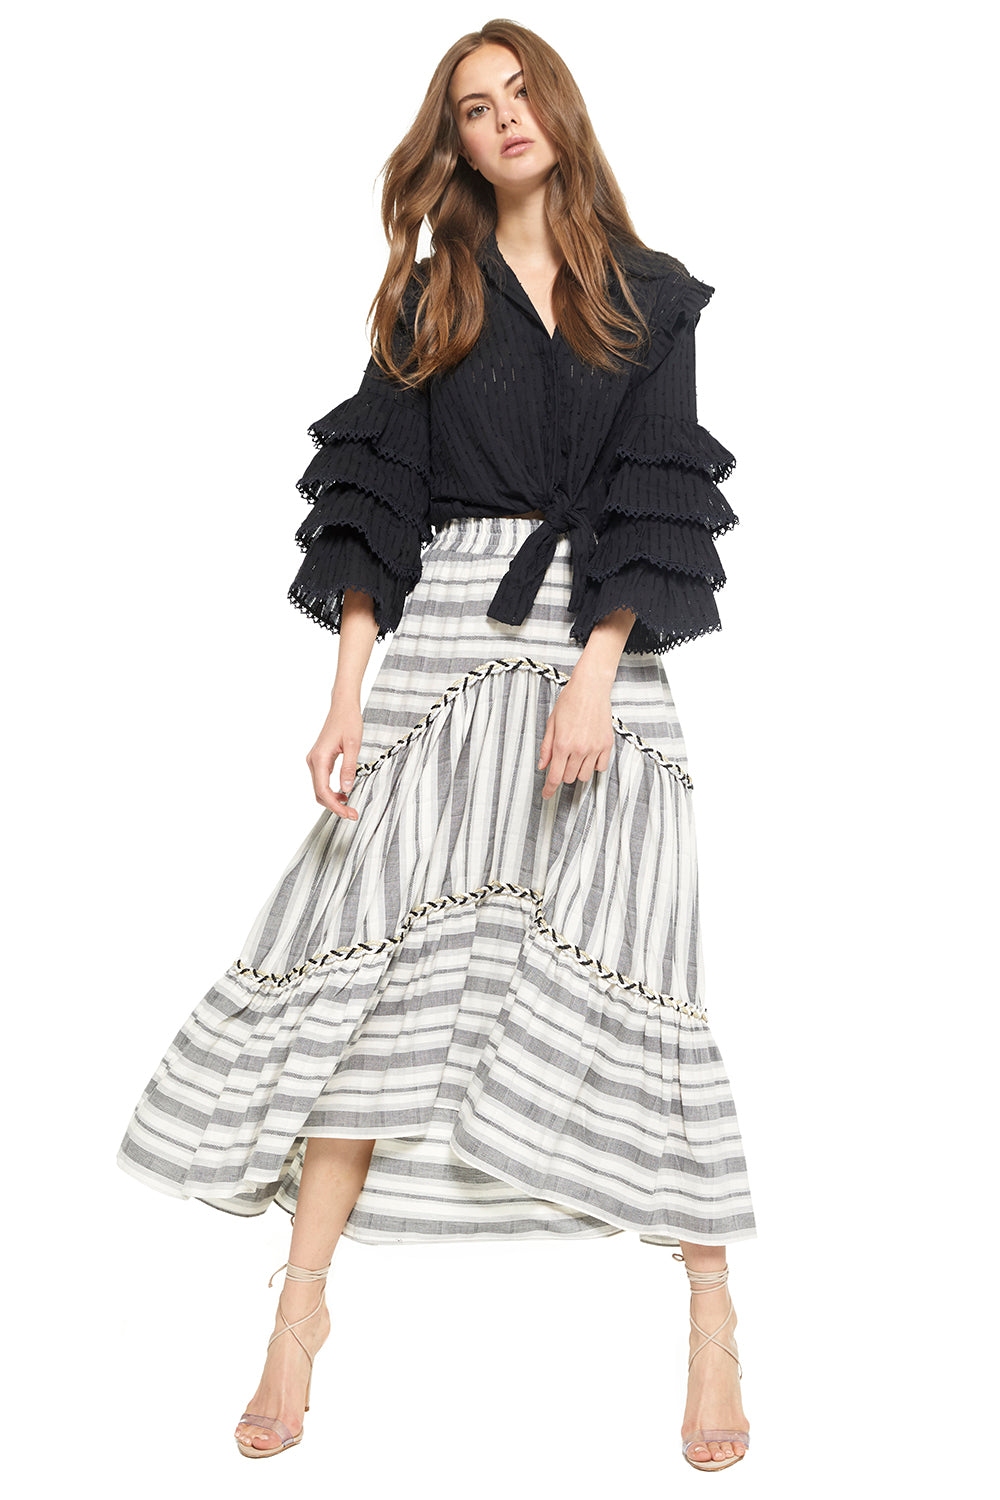 ANNALISA SKIRT - MISA Los Angeles